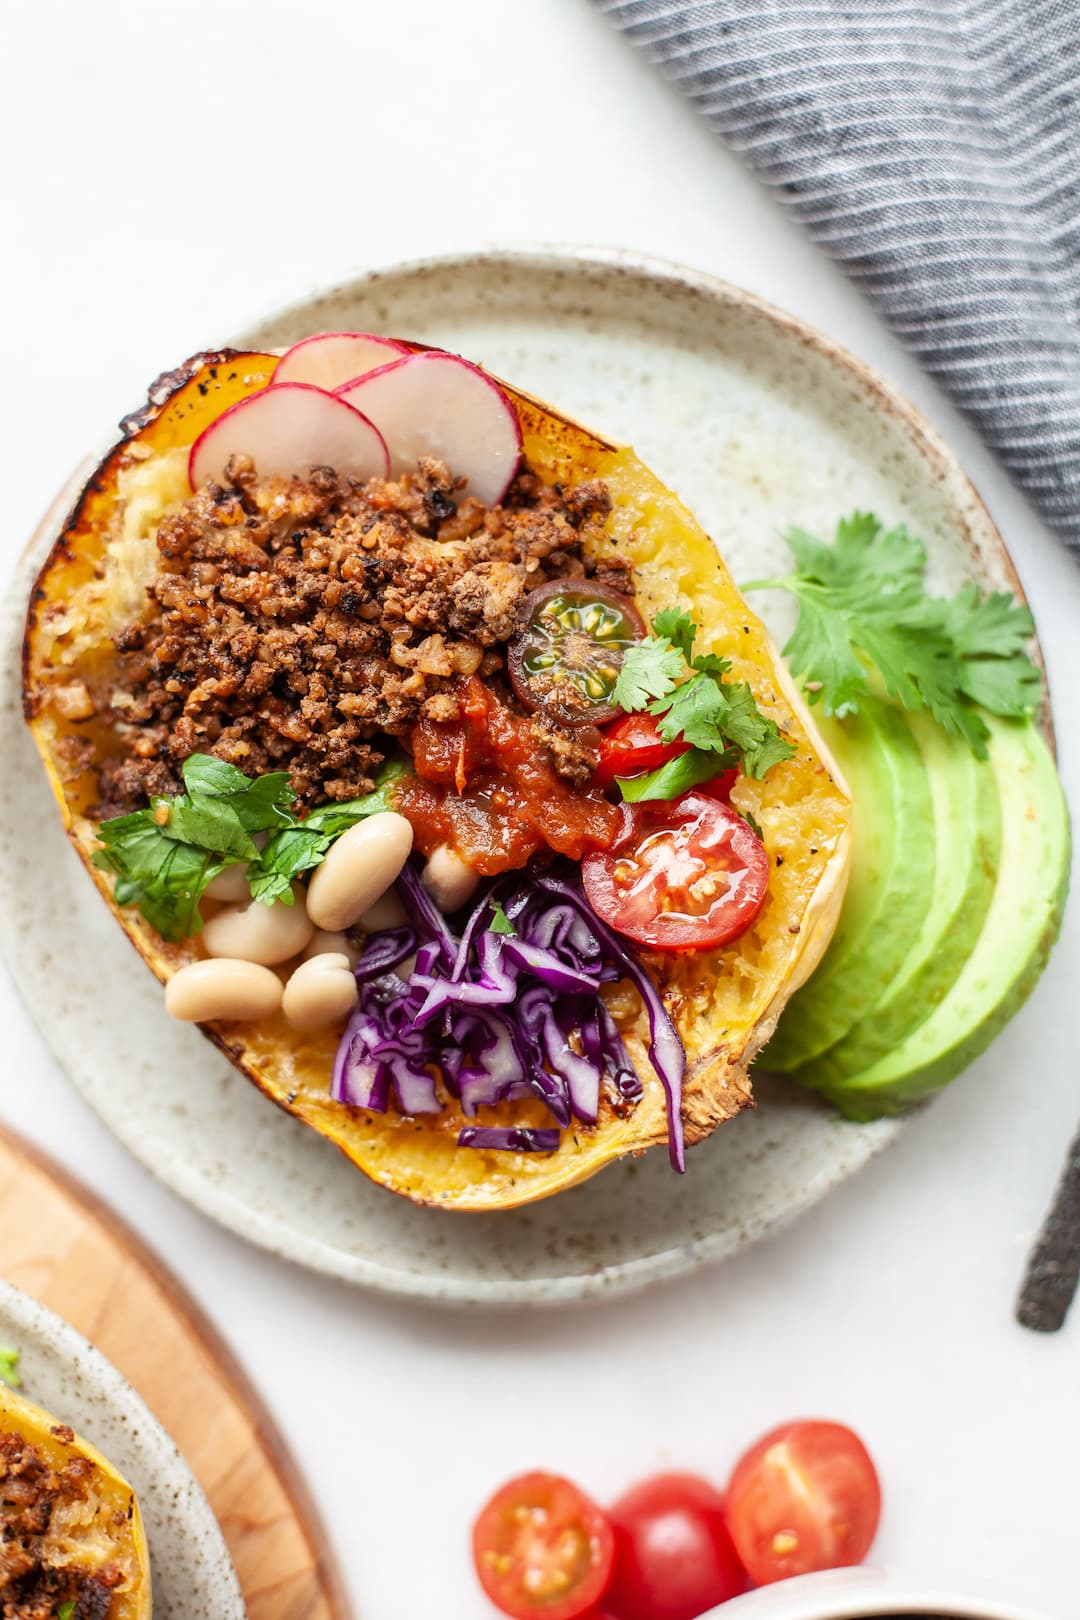 spaghetti squash burrito bowls with walnut taco meat vegetables and white beans